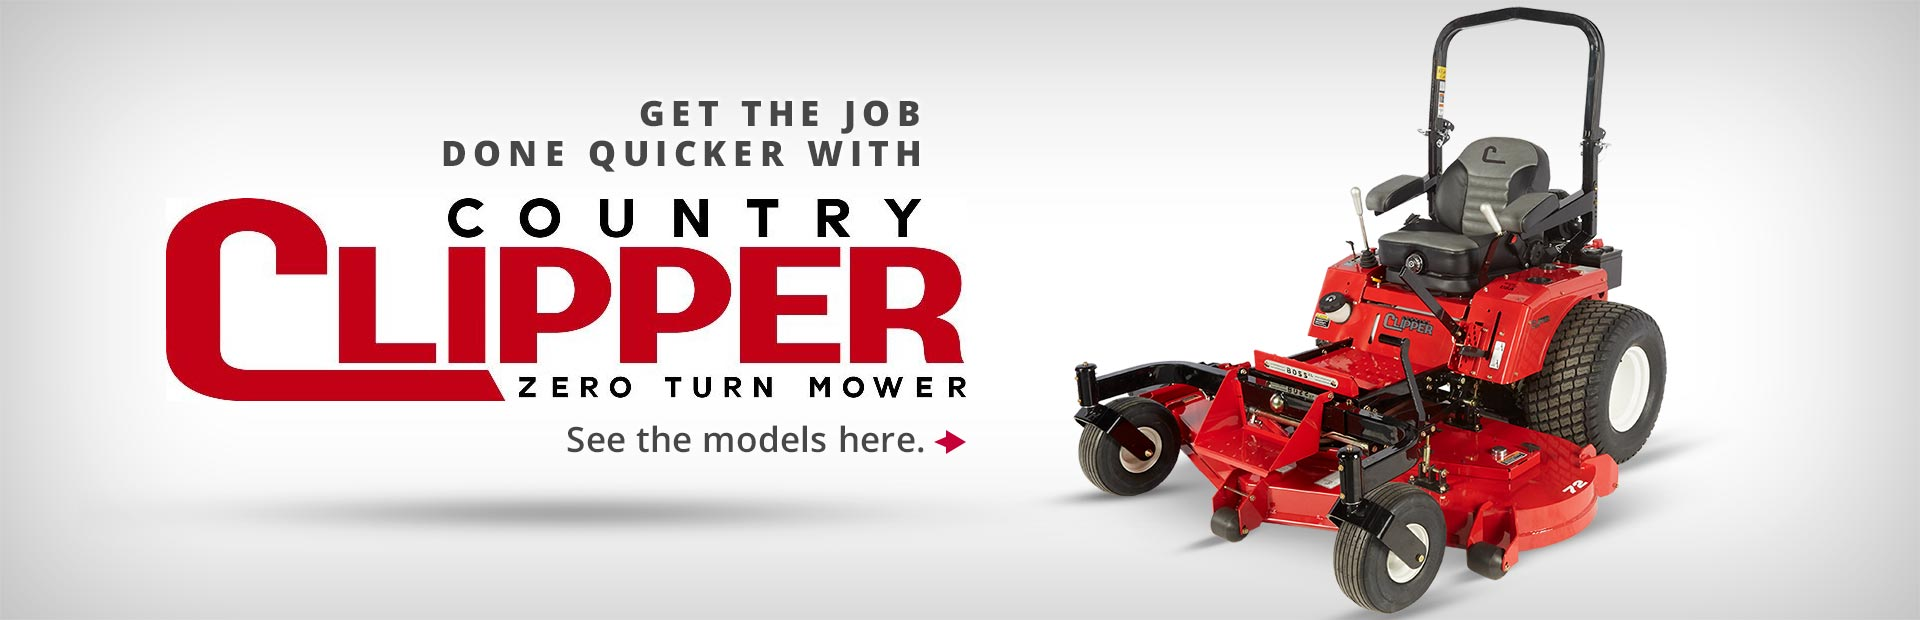 Get the job done quicker with Country Clipper! Click here to view the models.